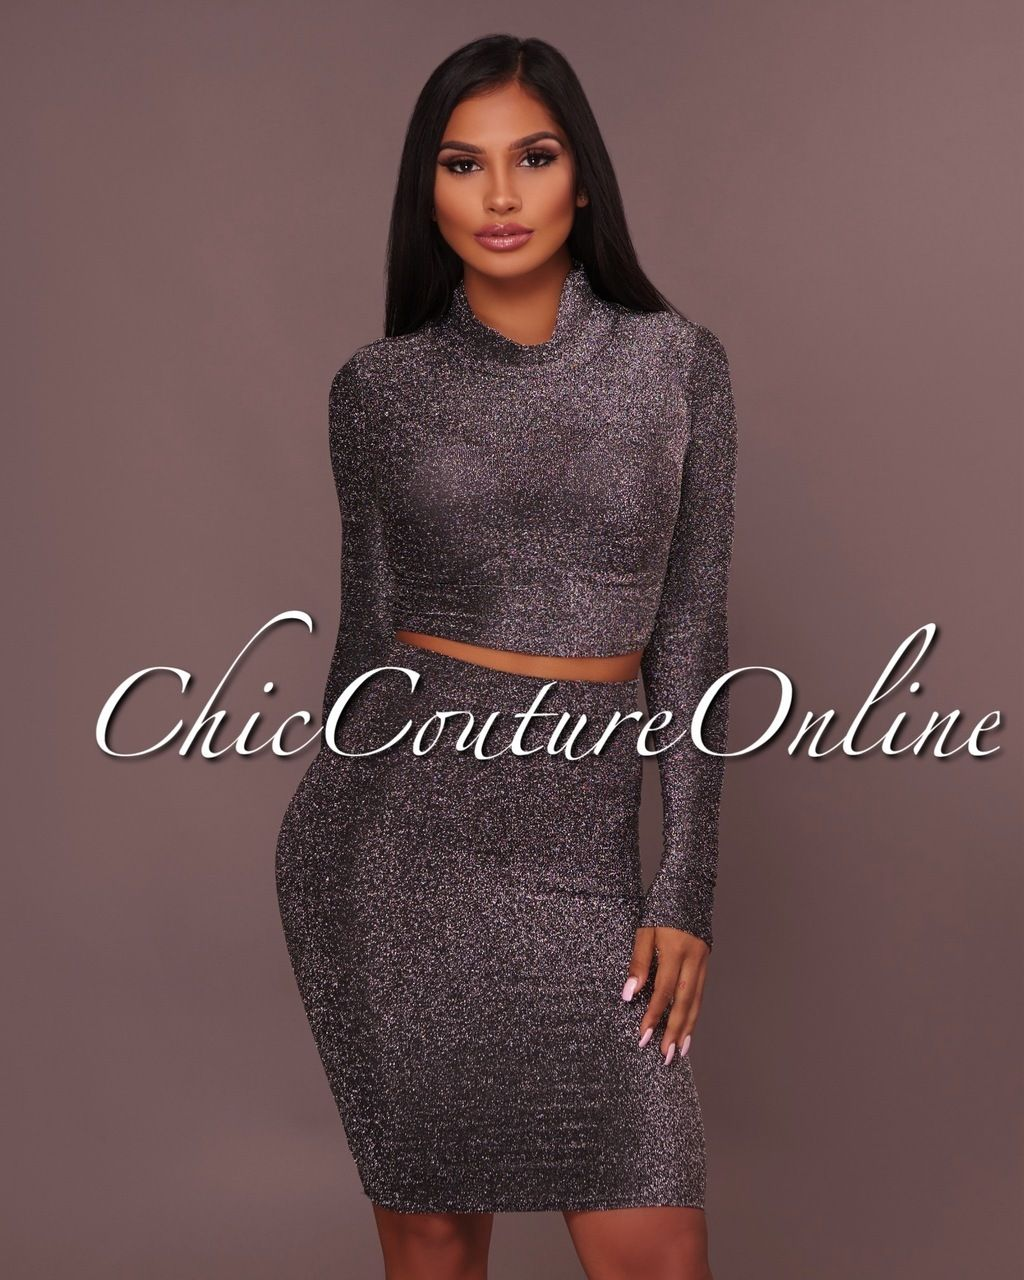 Chic couture online wanda black shimmer two piece set